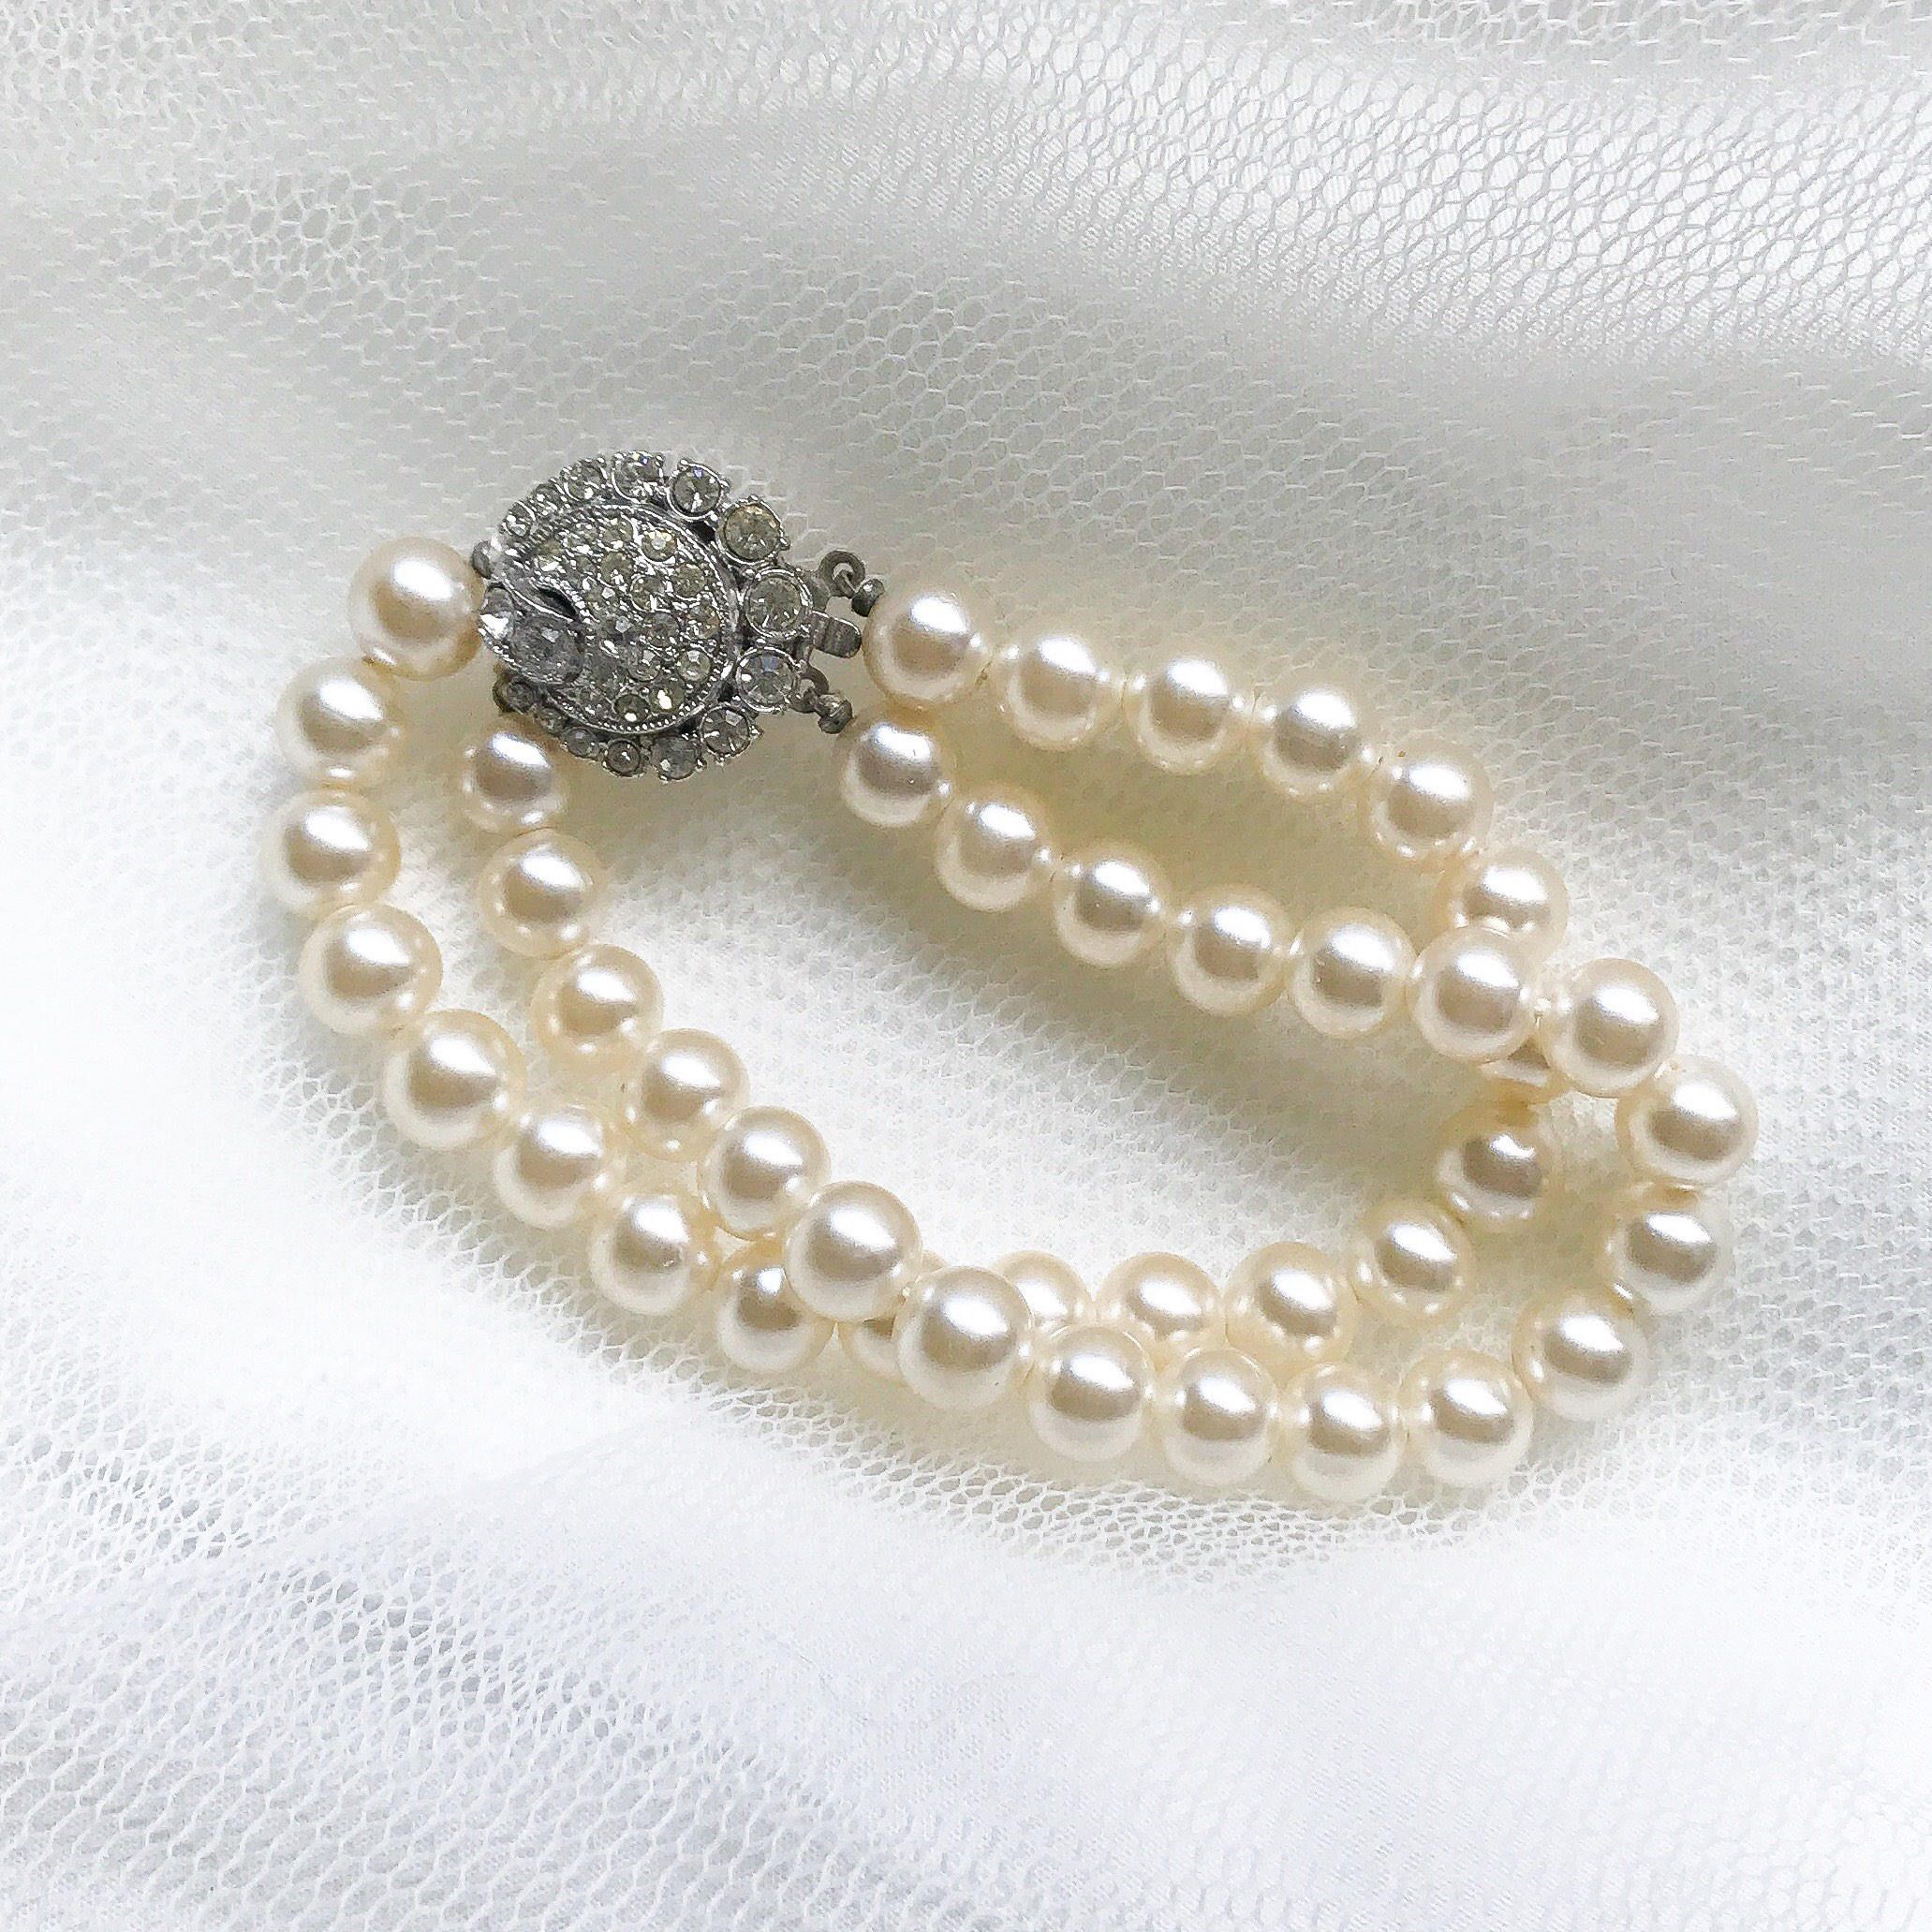 mom pearls bracelet on bride mother the ivory charm remember your or memorial wedding day of phrases choice pin white crystals